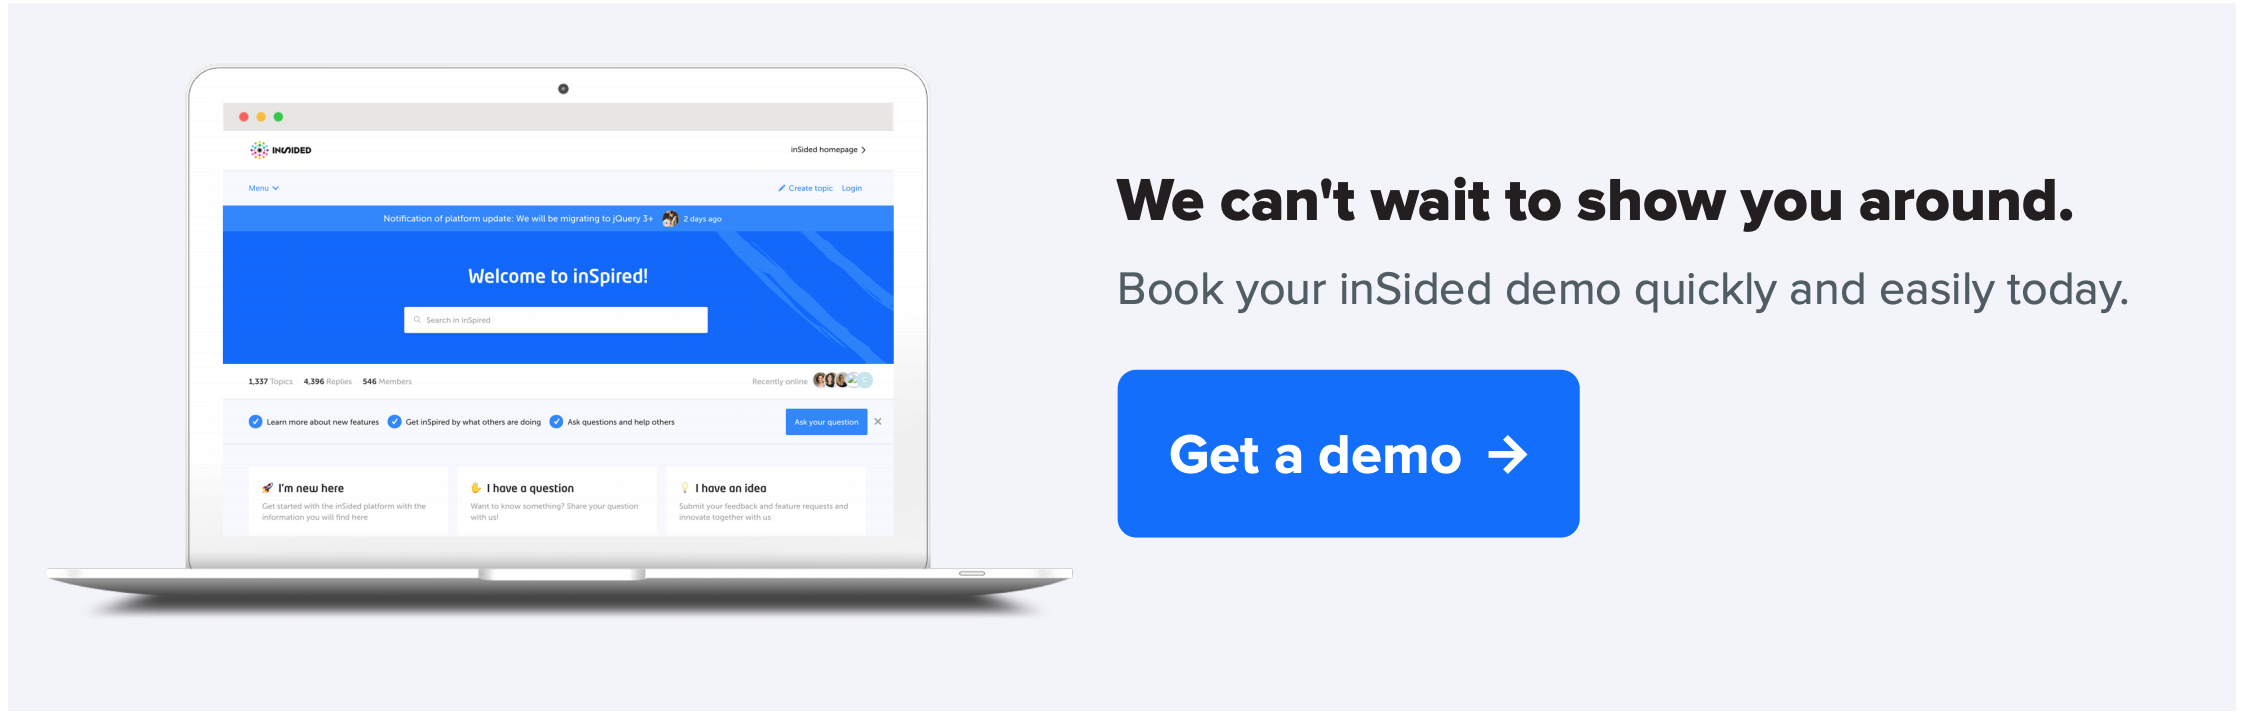 We can't wait to show you around. Get your demo.